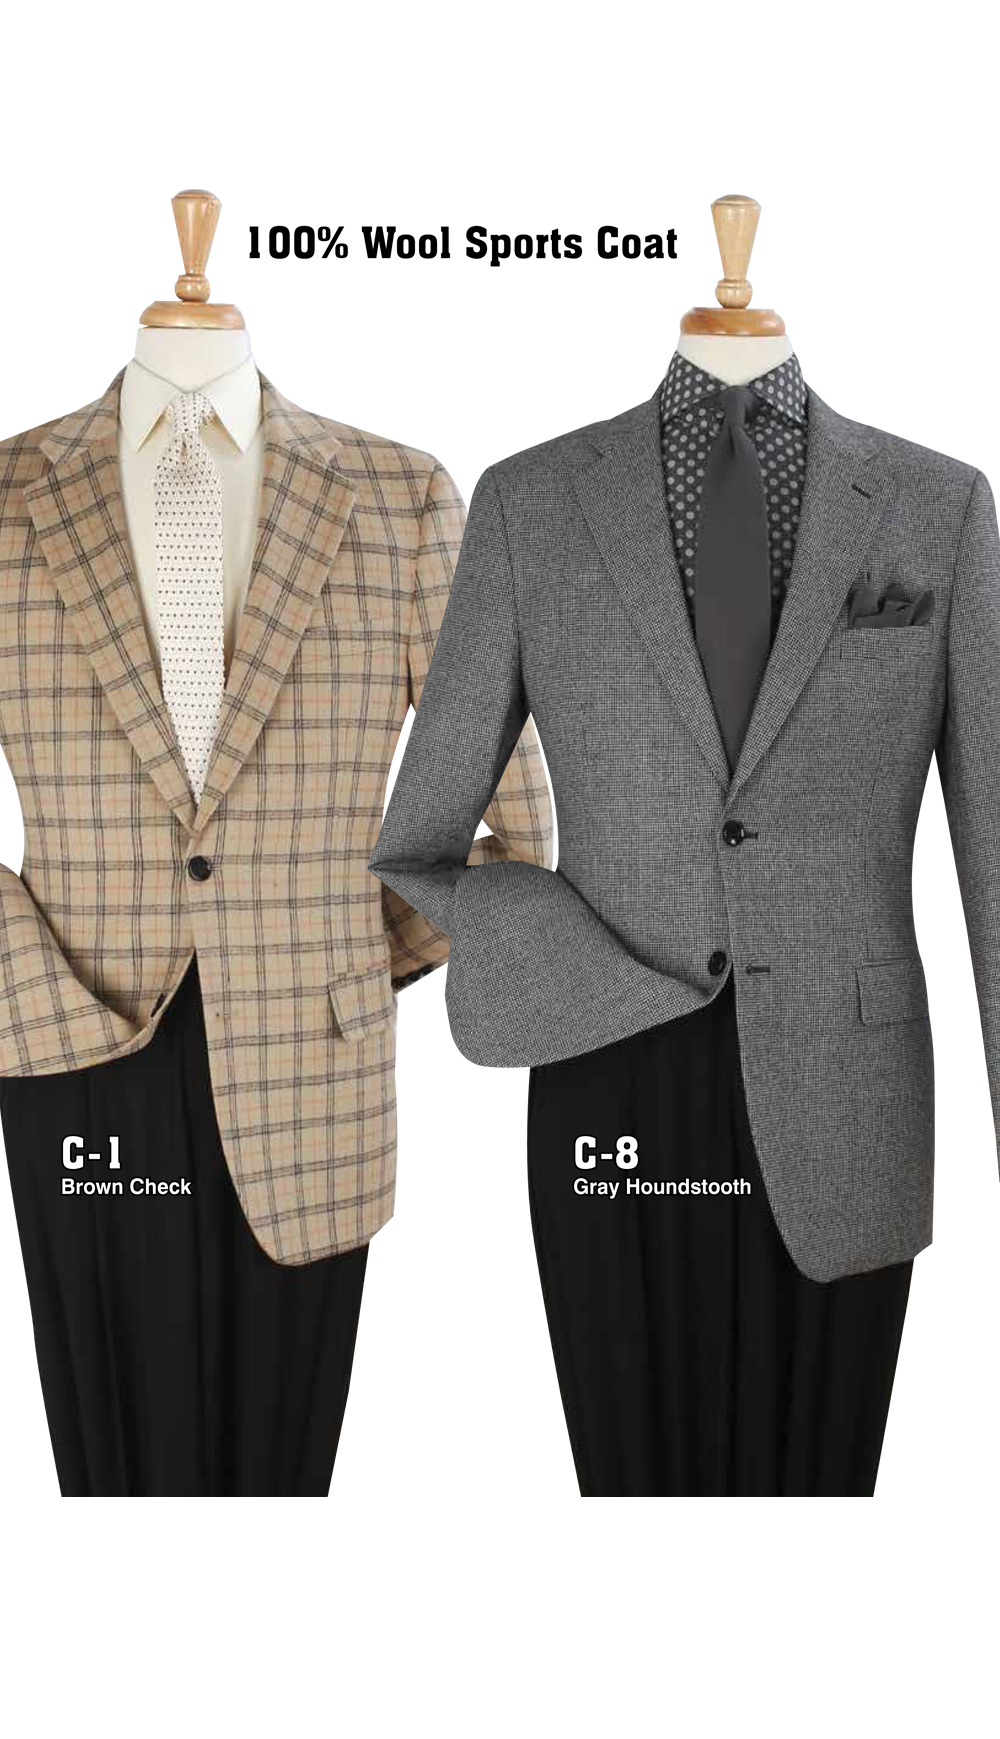 High Fashion Men Suits C-1